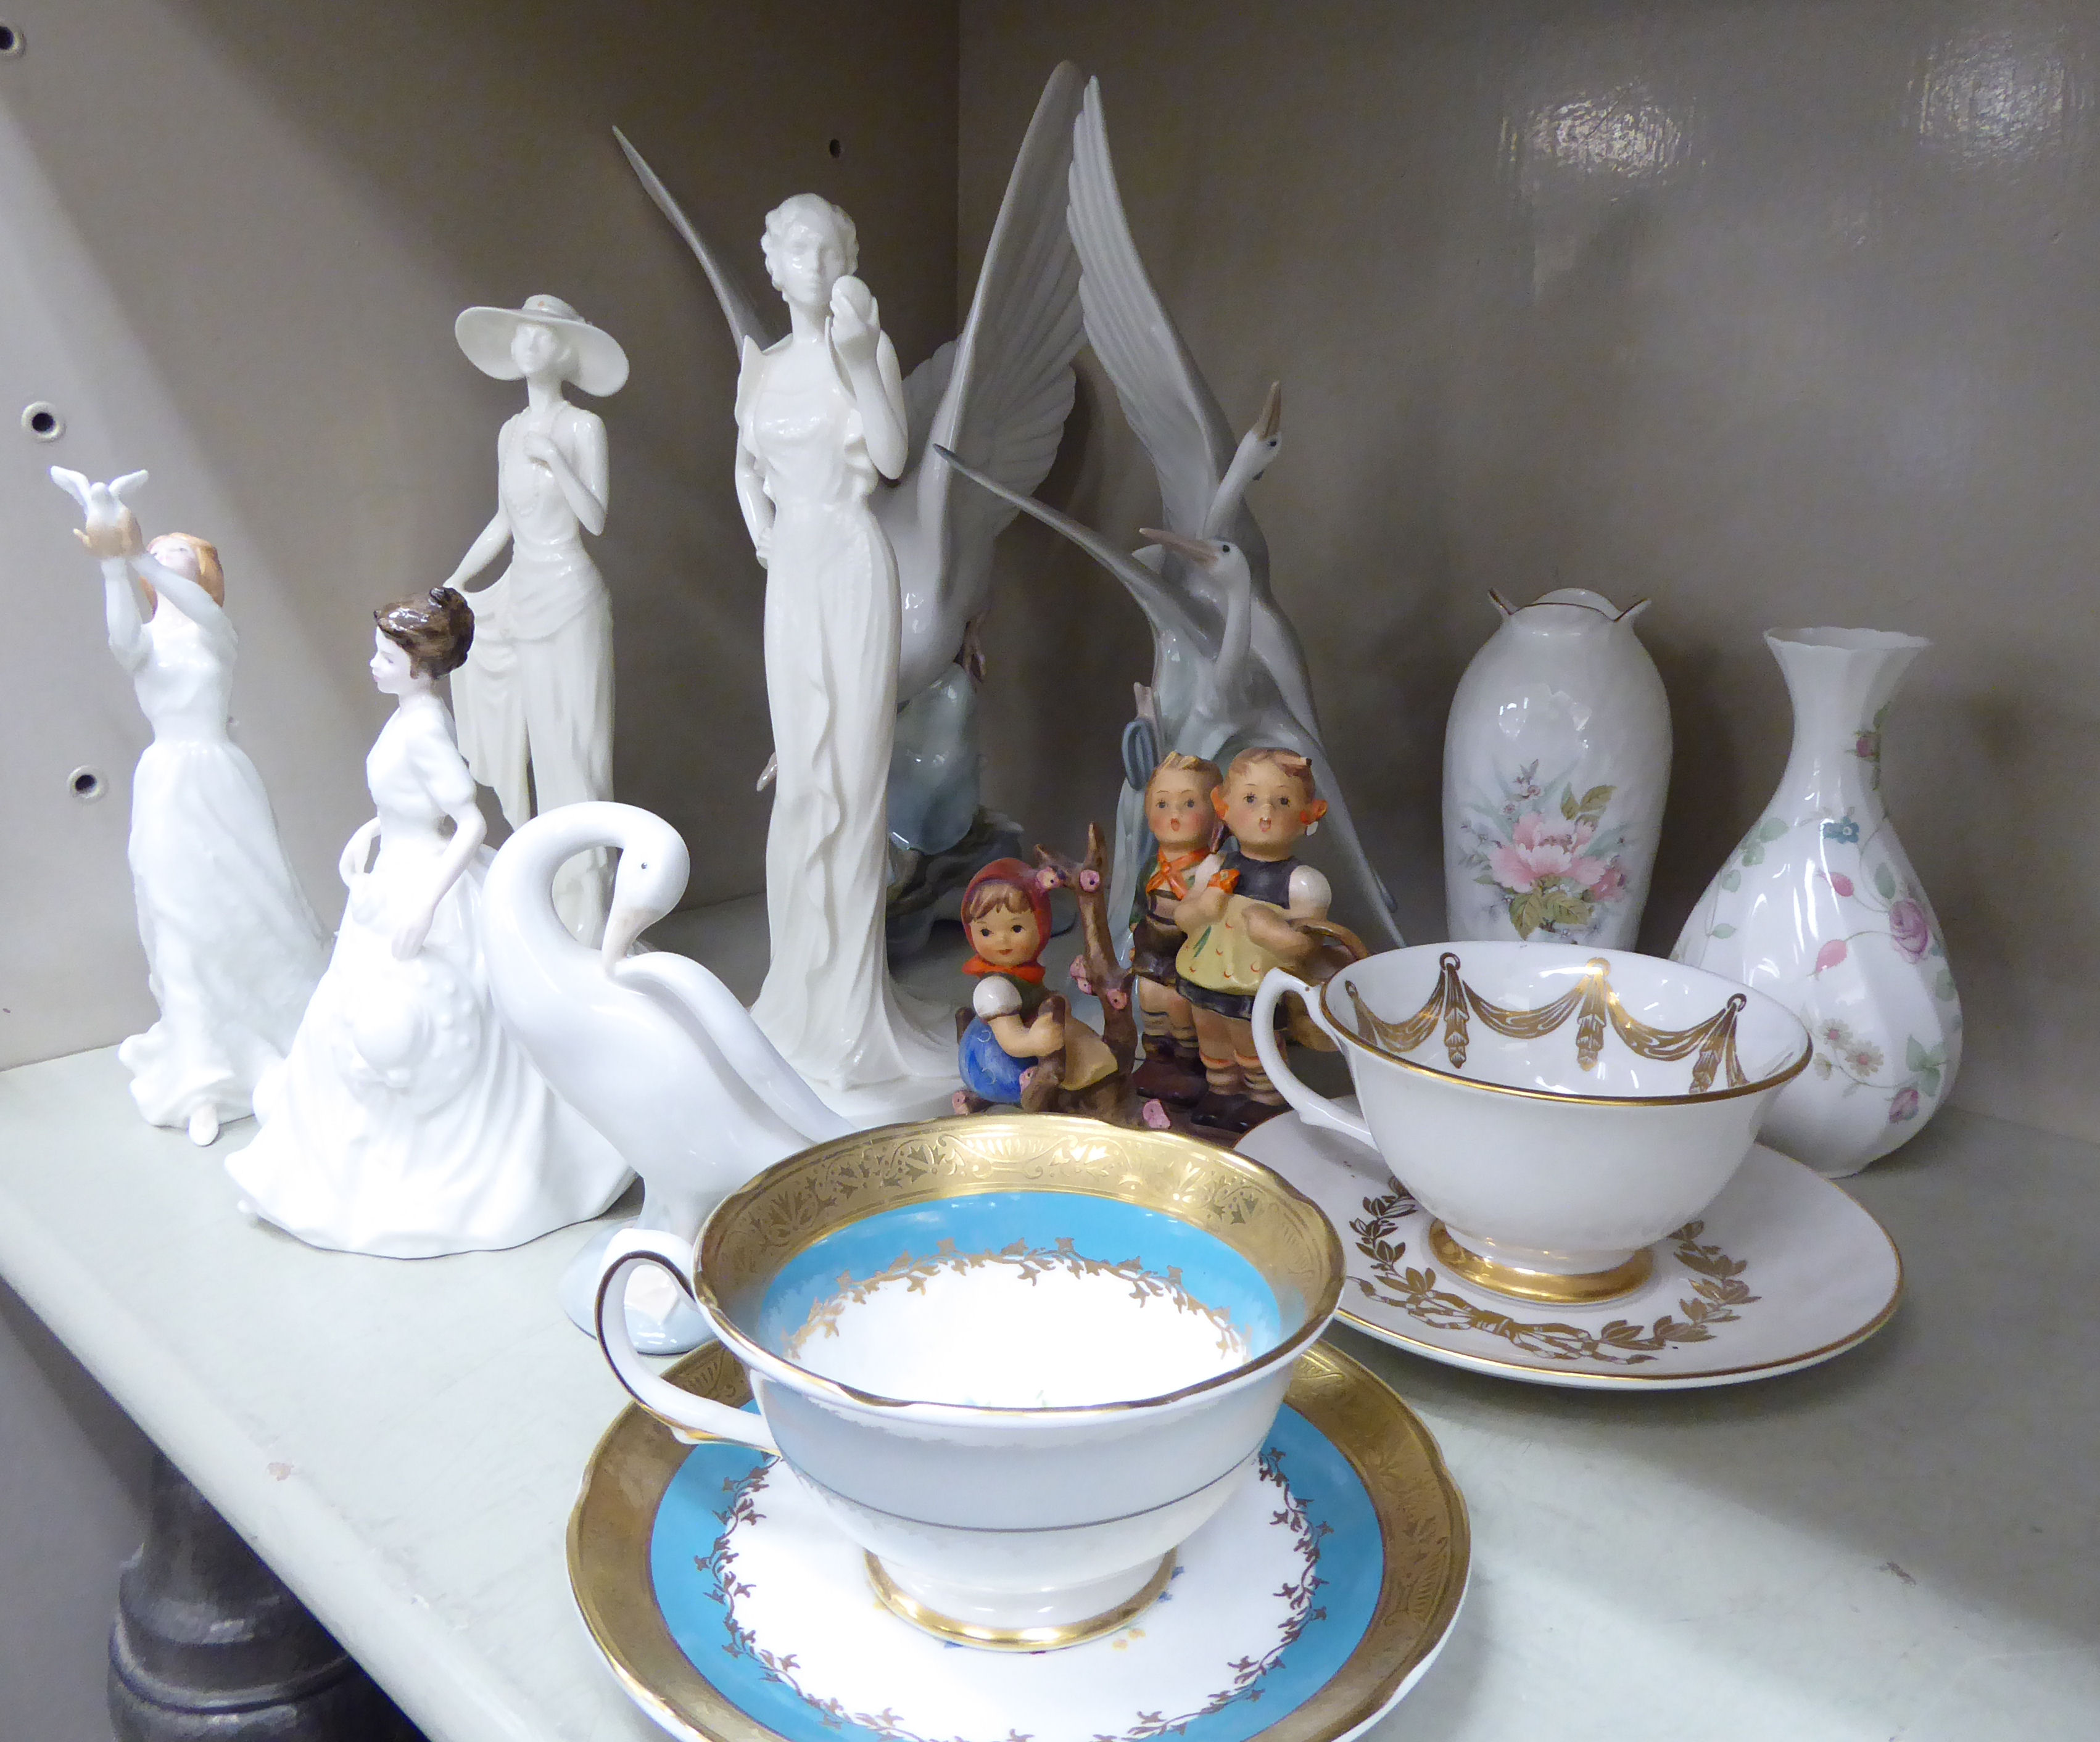 Lot 107 - Decorative ceramics: to include a Coalport china figure 'Moonlight Serenade' Limited Edition by